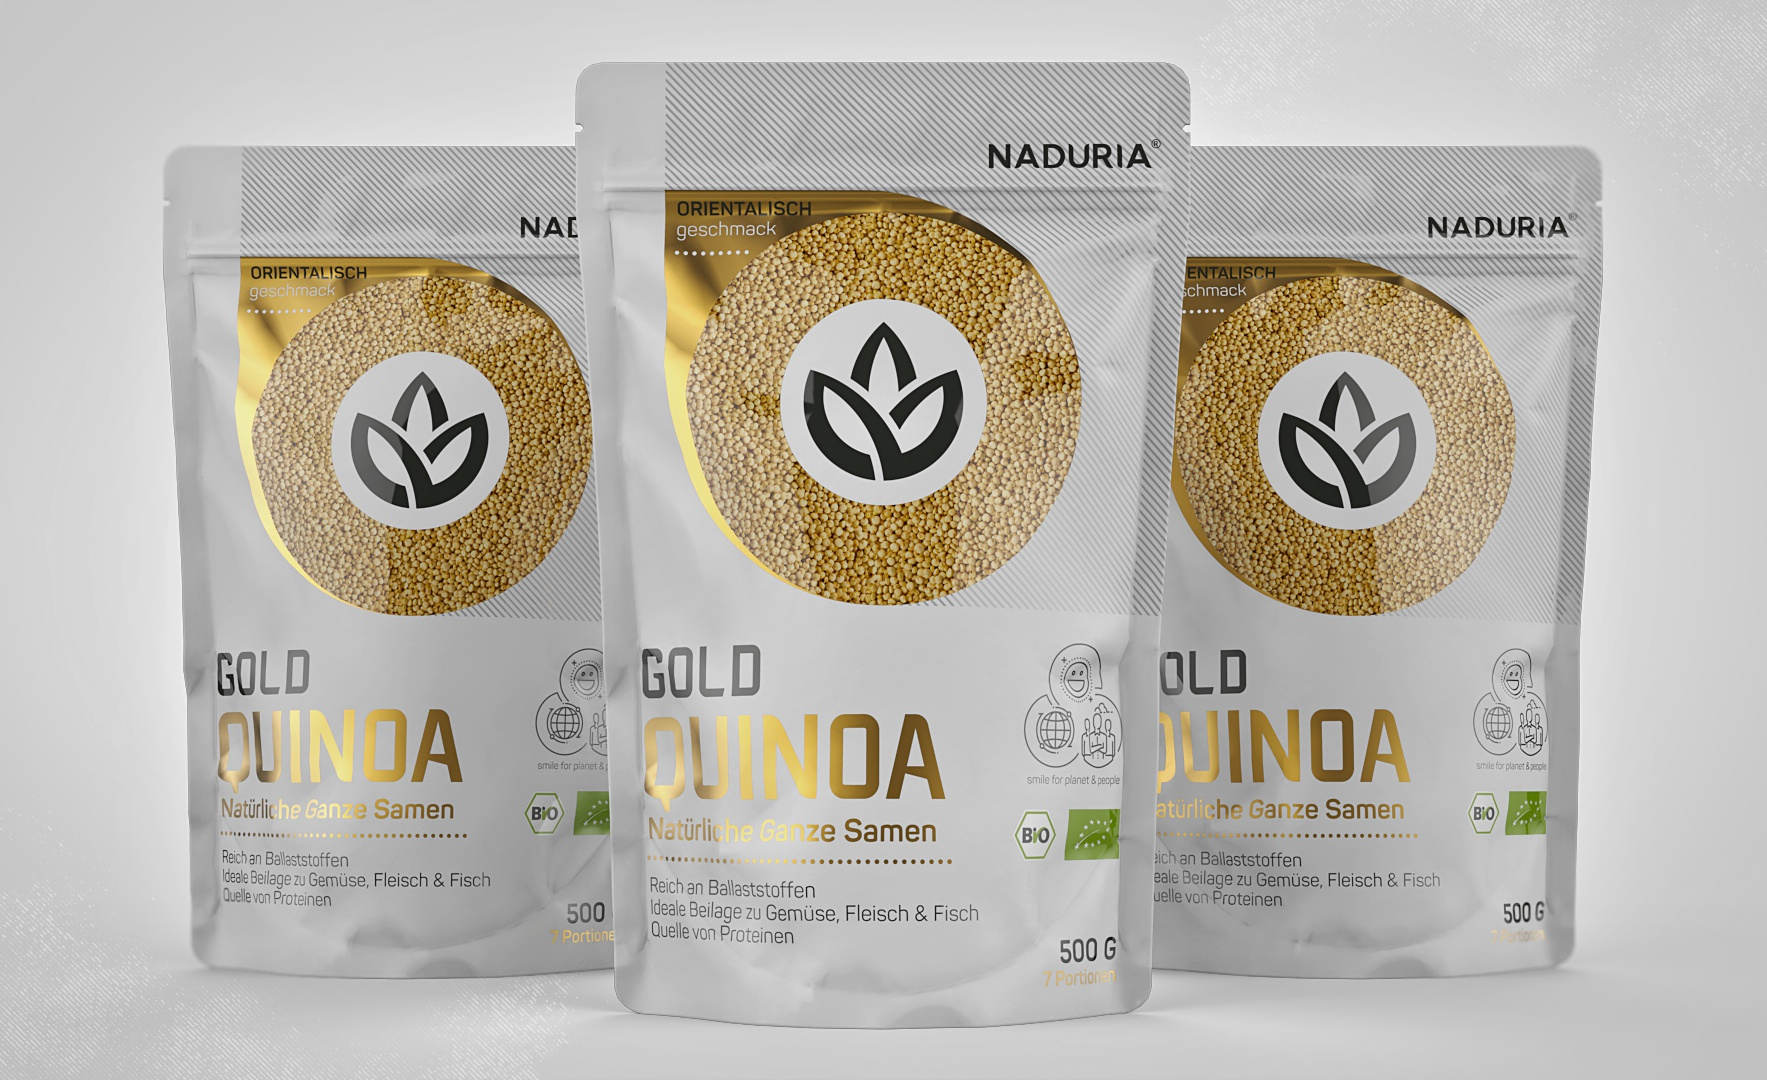 Naduria     quinoa gold   stand up pouch 500g   prototype concept v.2.1